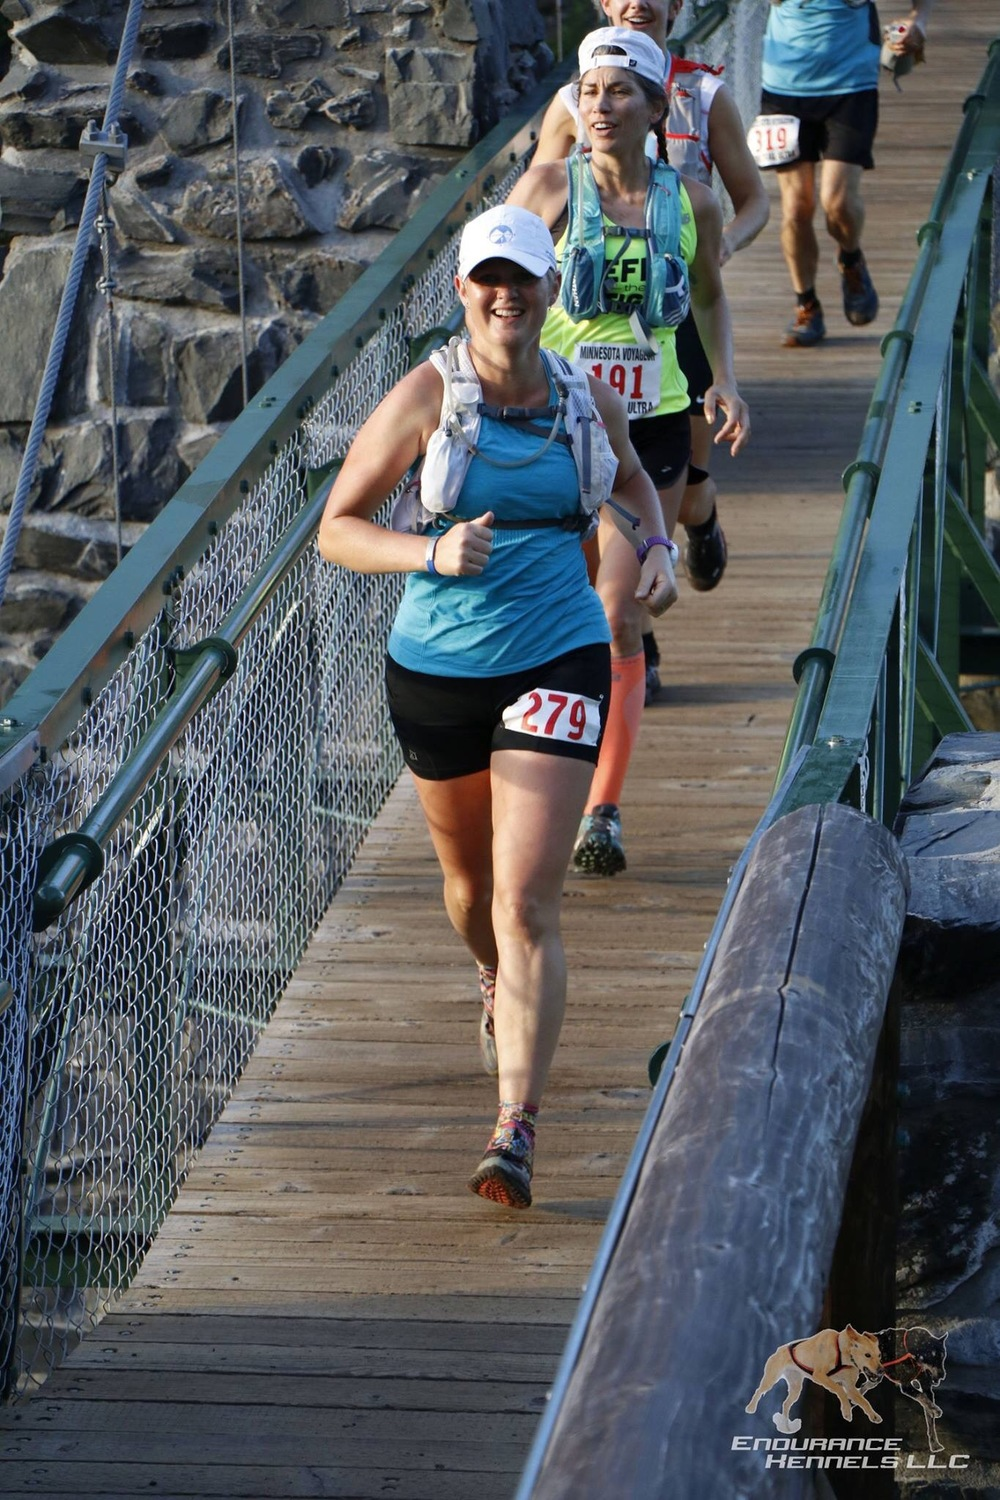 Crossing the swinging bridge 3+ miles in.  Endurance Kennels photo.